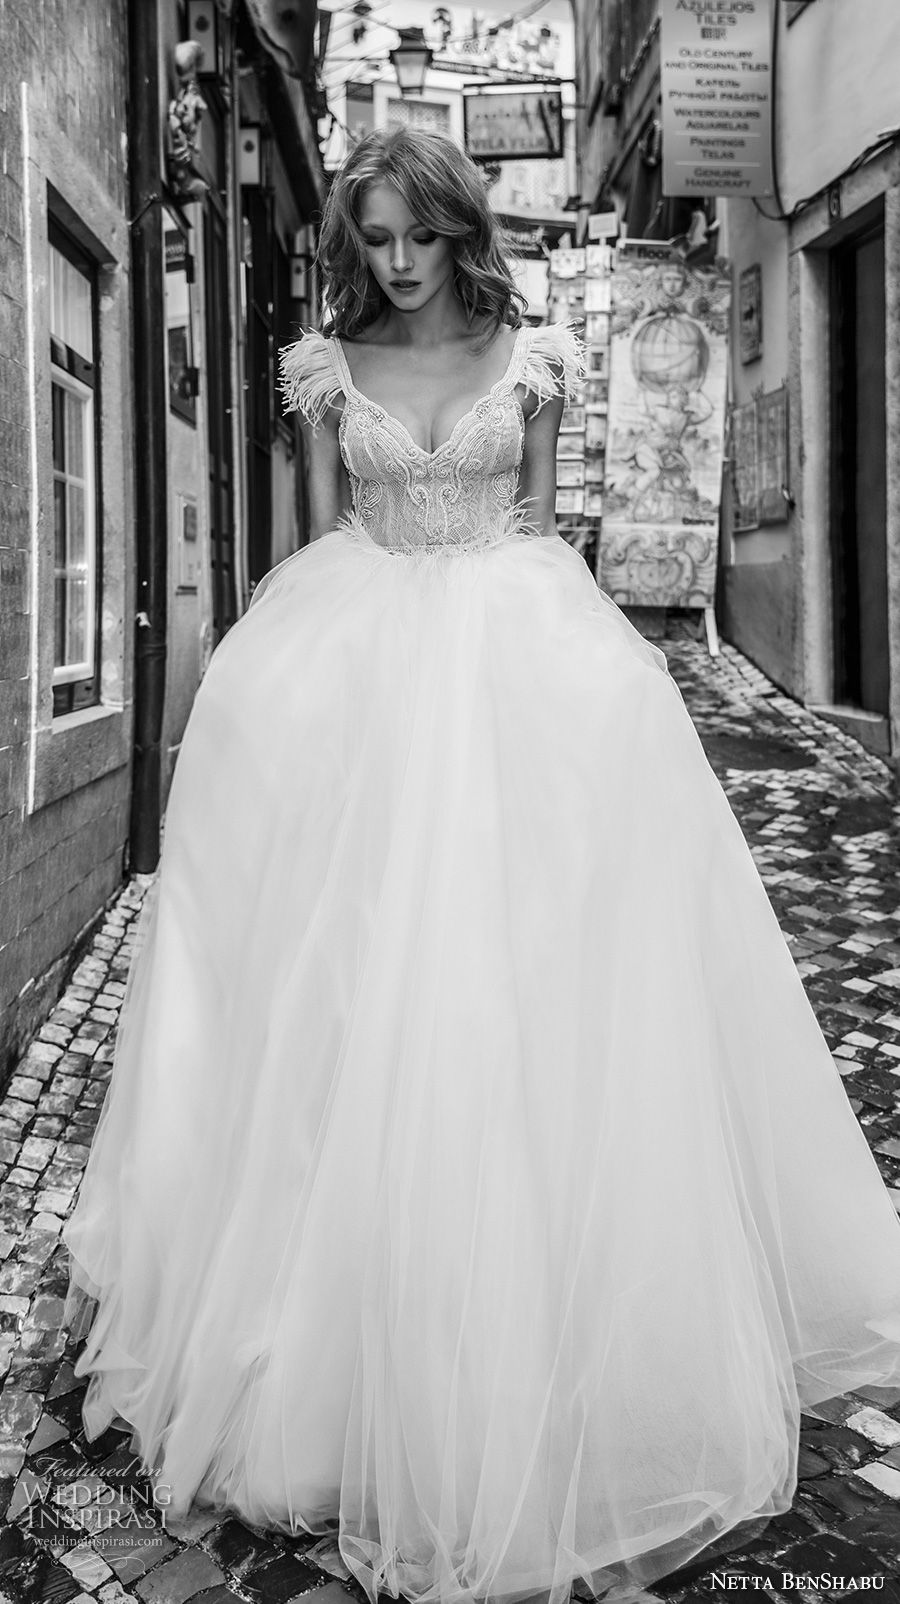 netta benshabu 2017 bridal cap sleeves sweetheart neckline heavily embellished bodice princess ball gown wedding dress open back chapel train (19) mv